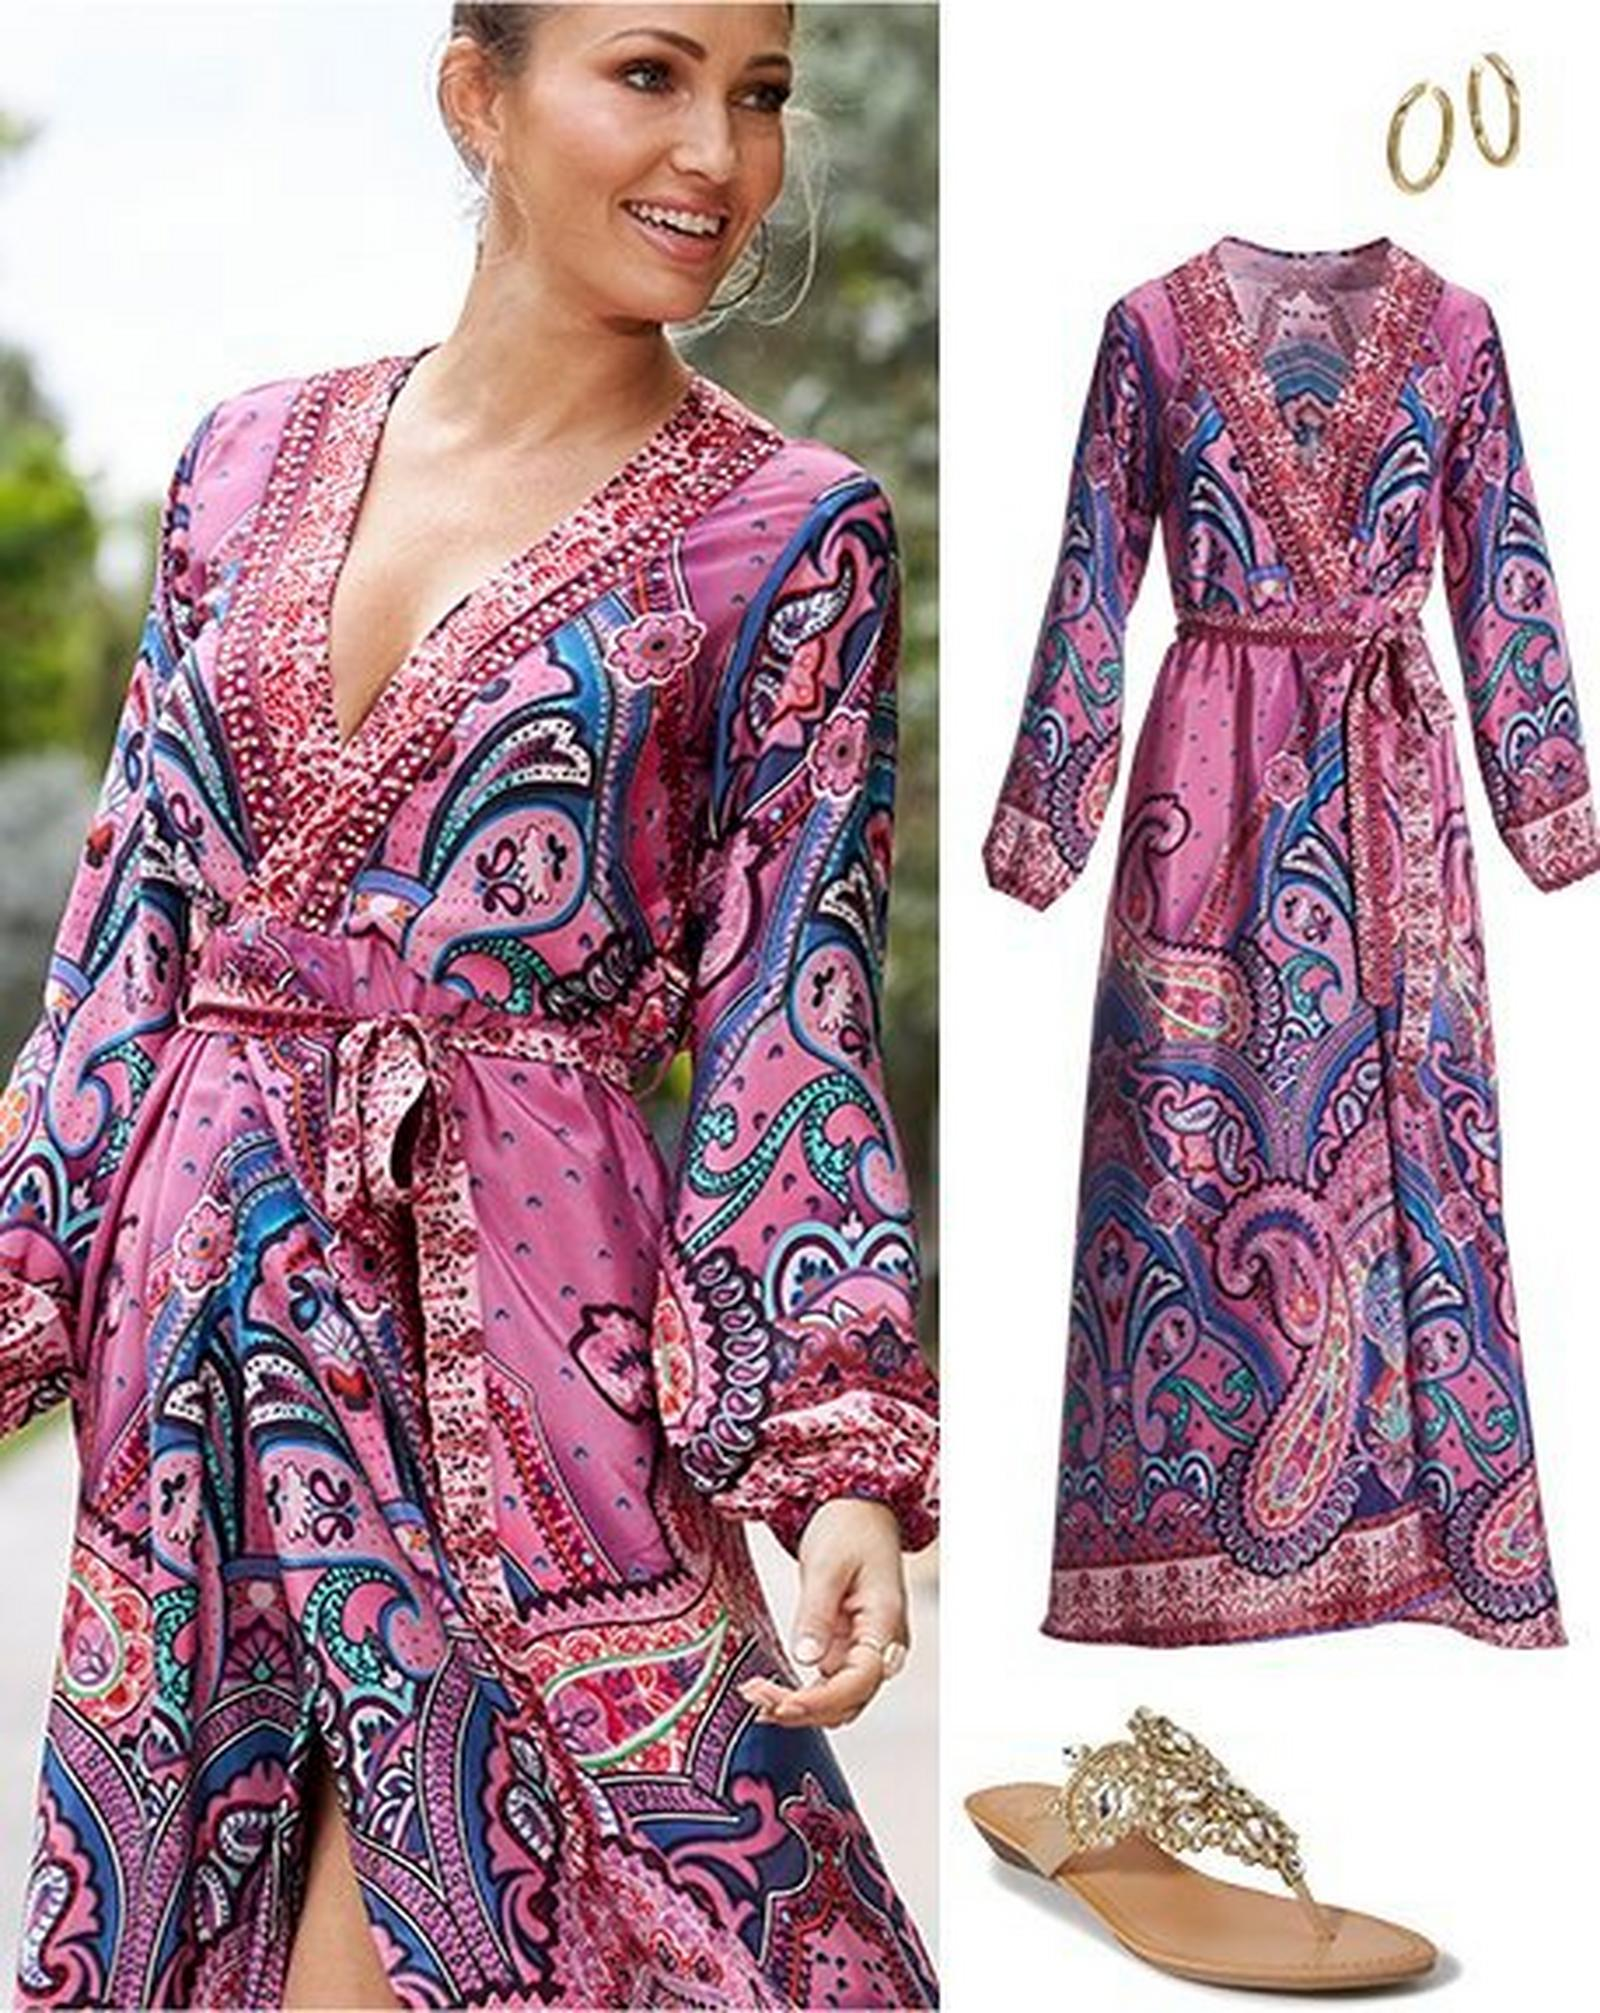 left model wearing a multicolored paisley print long-sleeve wrap maxi dress. right panel: multicolored paisley print long-sleeve wrap maxi dress, gold hoop earrings, gold jeweled sandals.